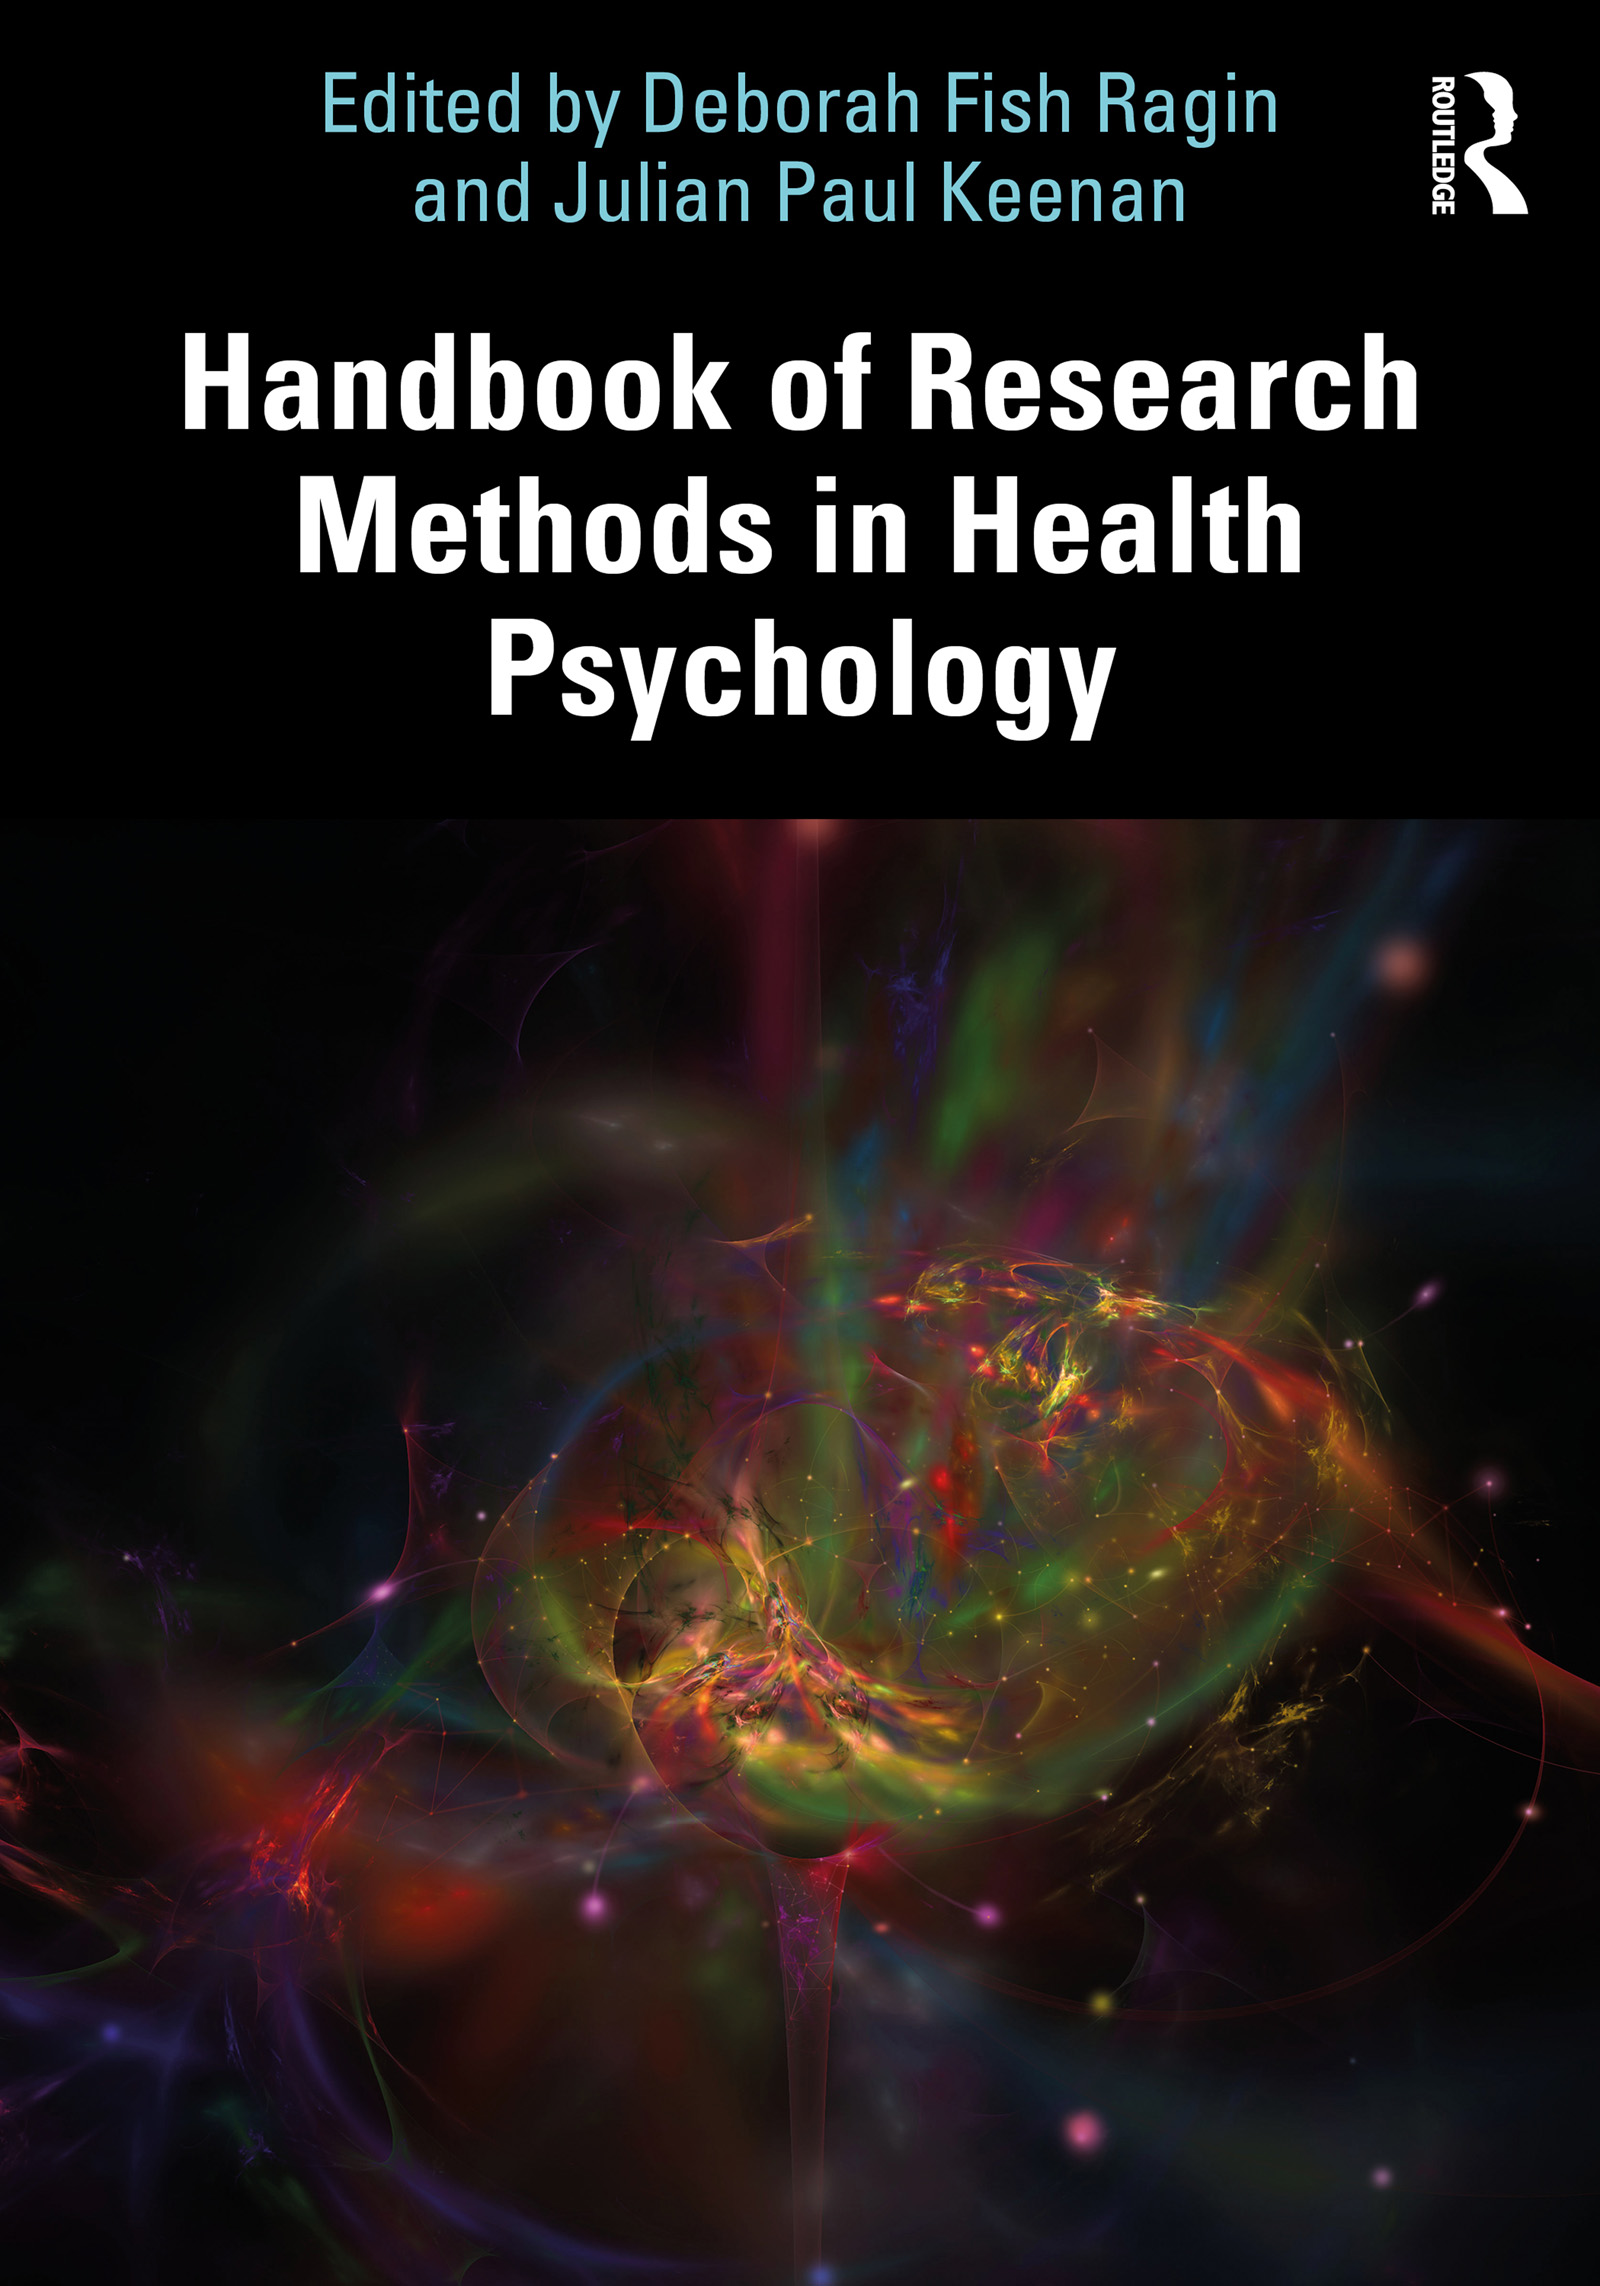 Applying Theories in Health Psychology